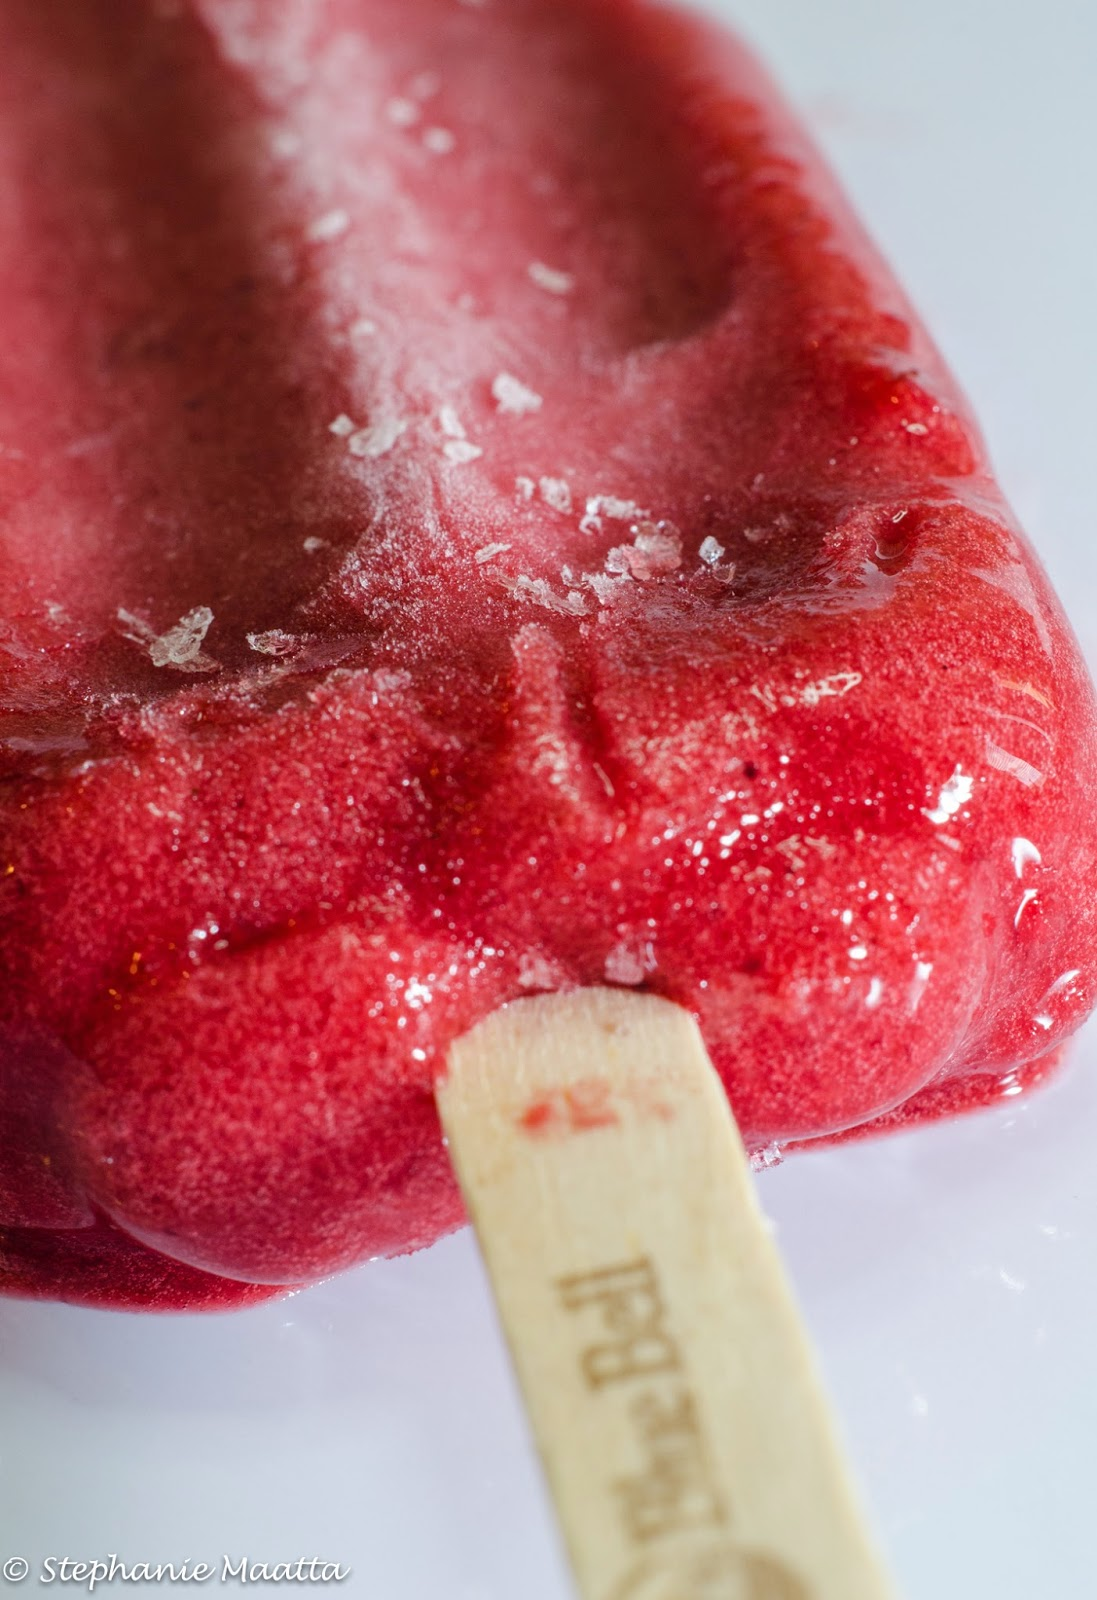 mixed berry popsicle melting